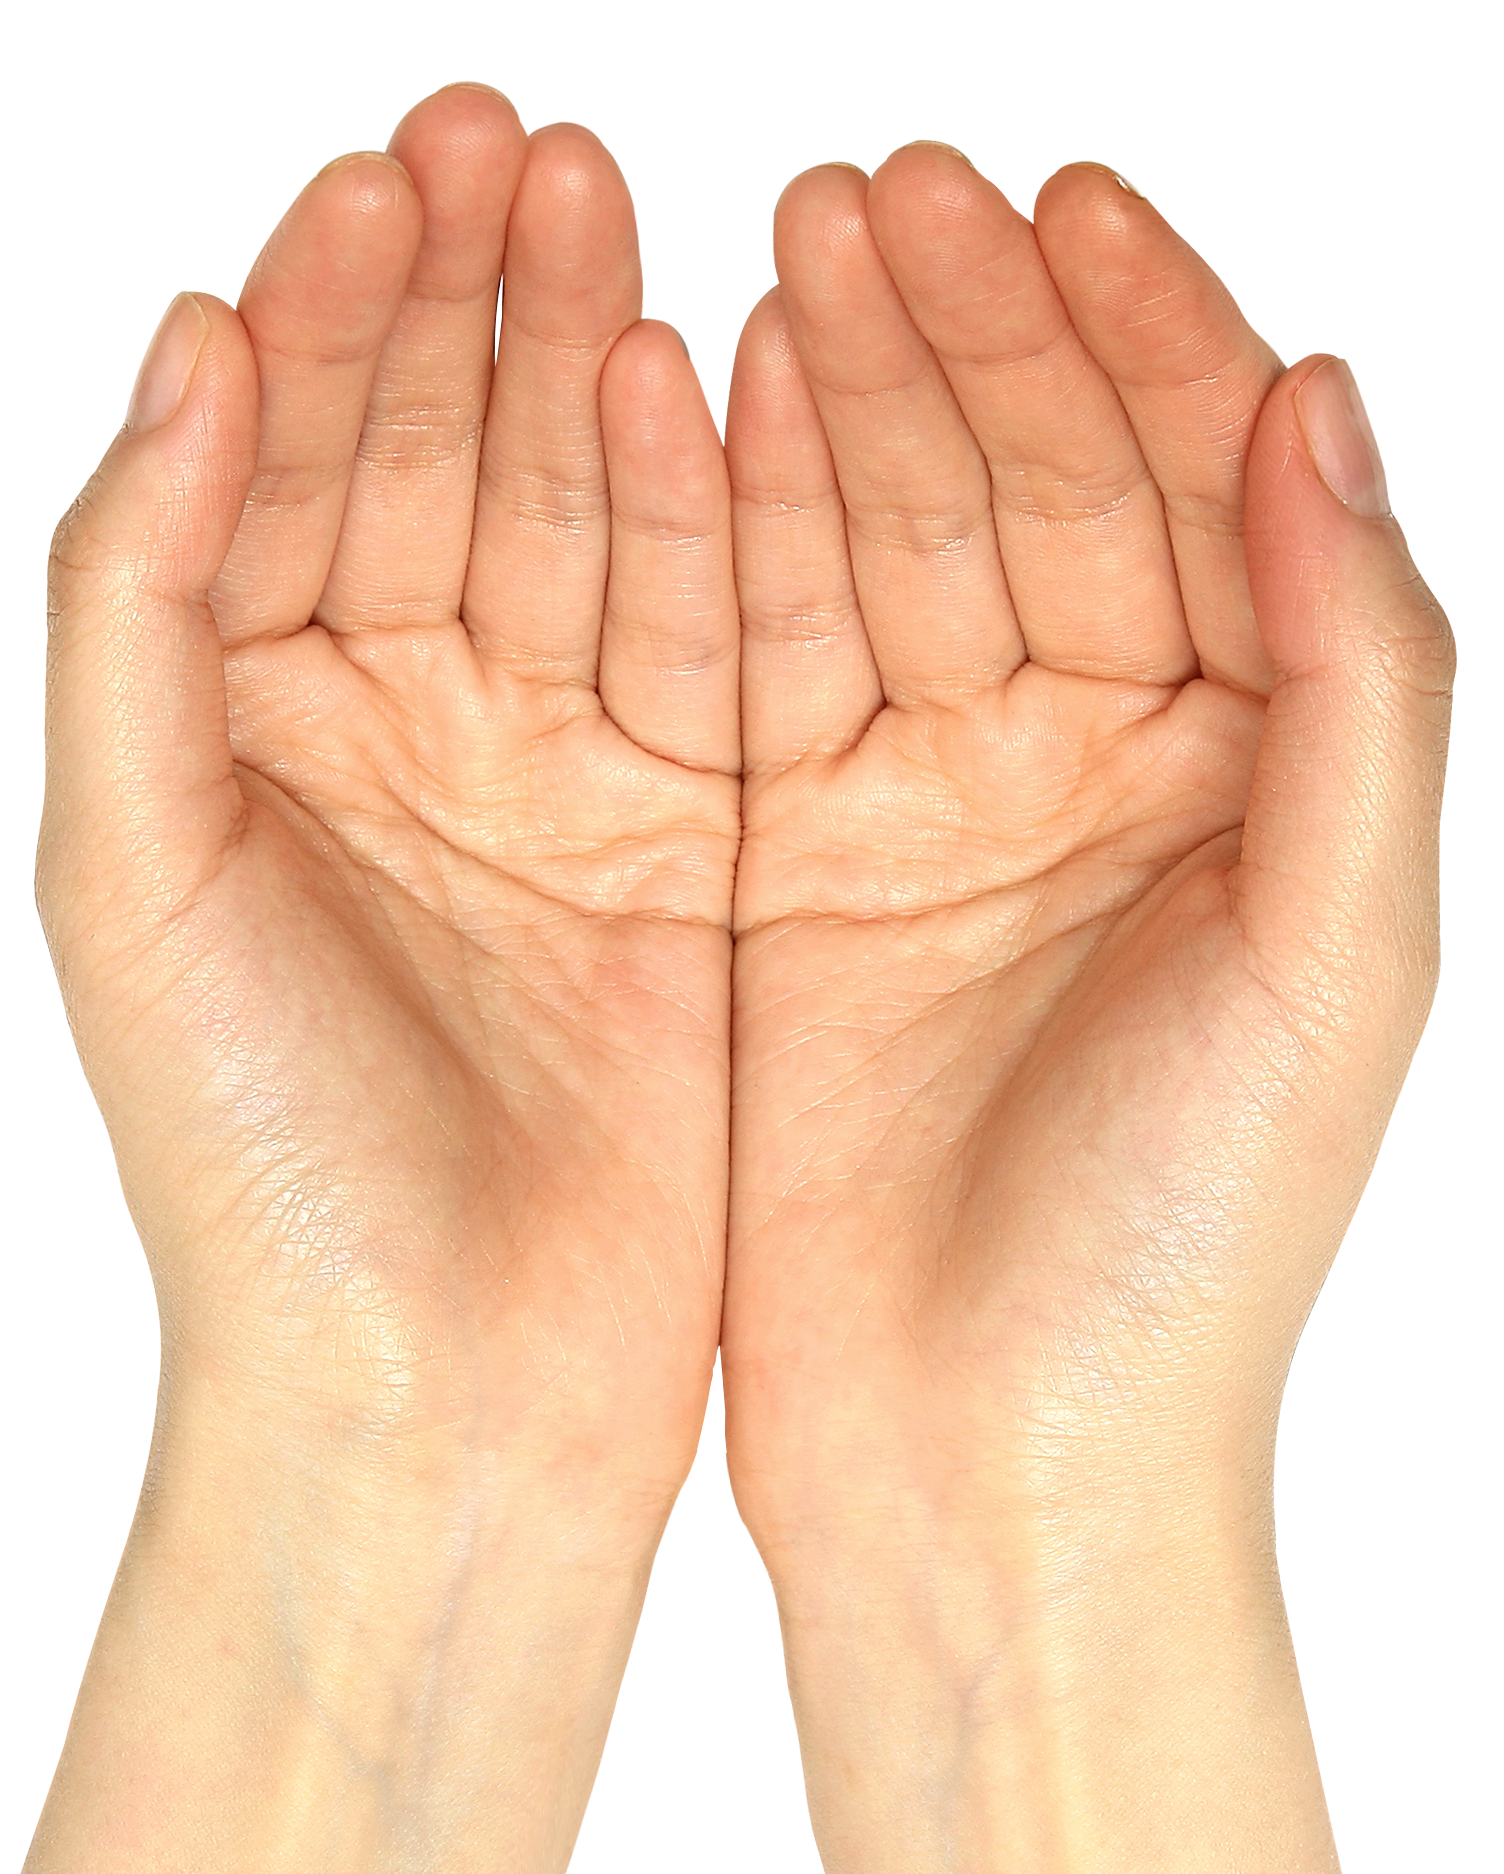 Hand out png. Hands clipart picture gallery